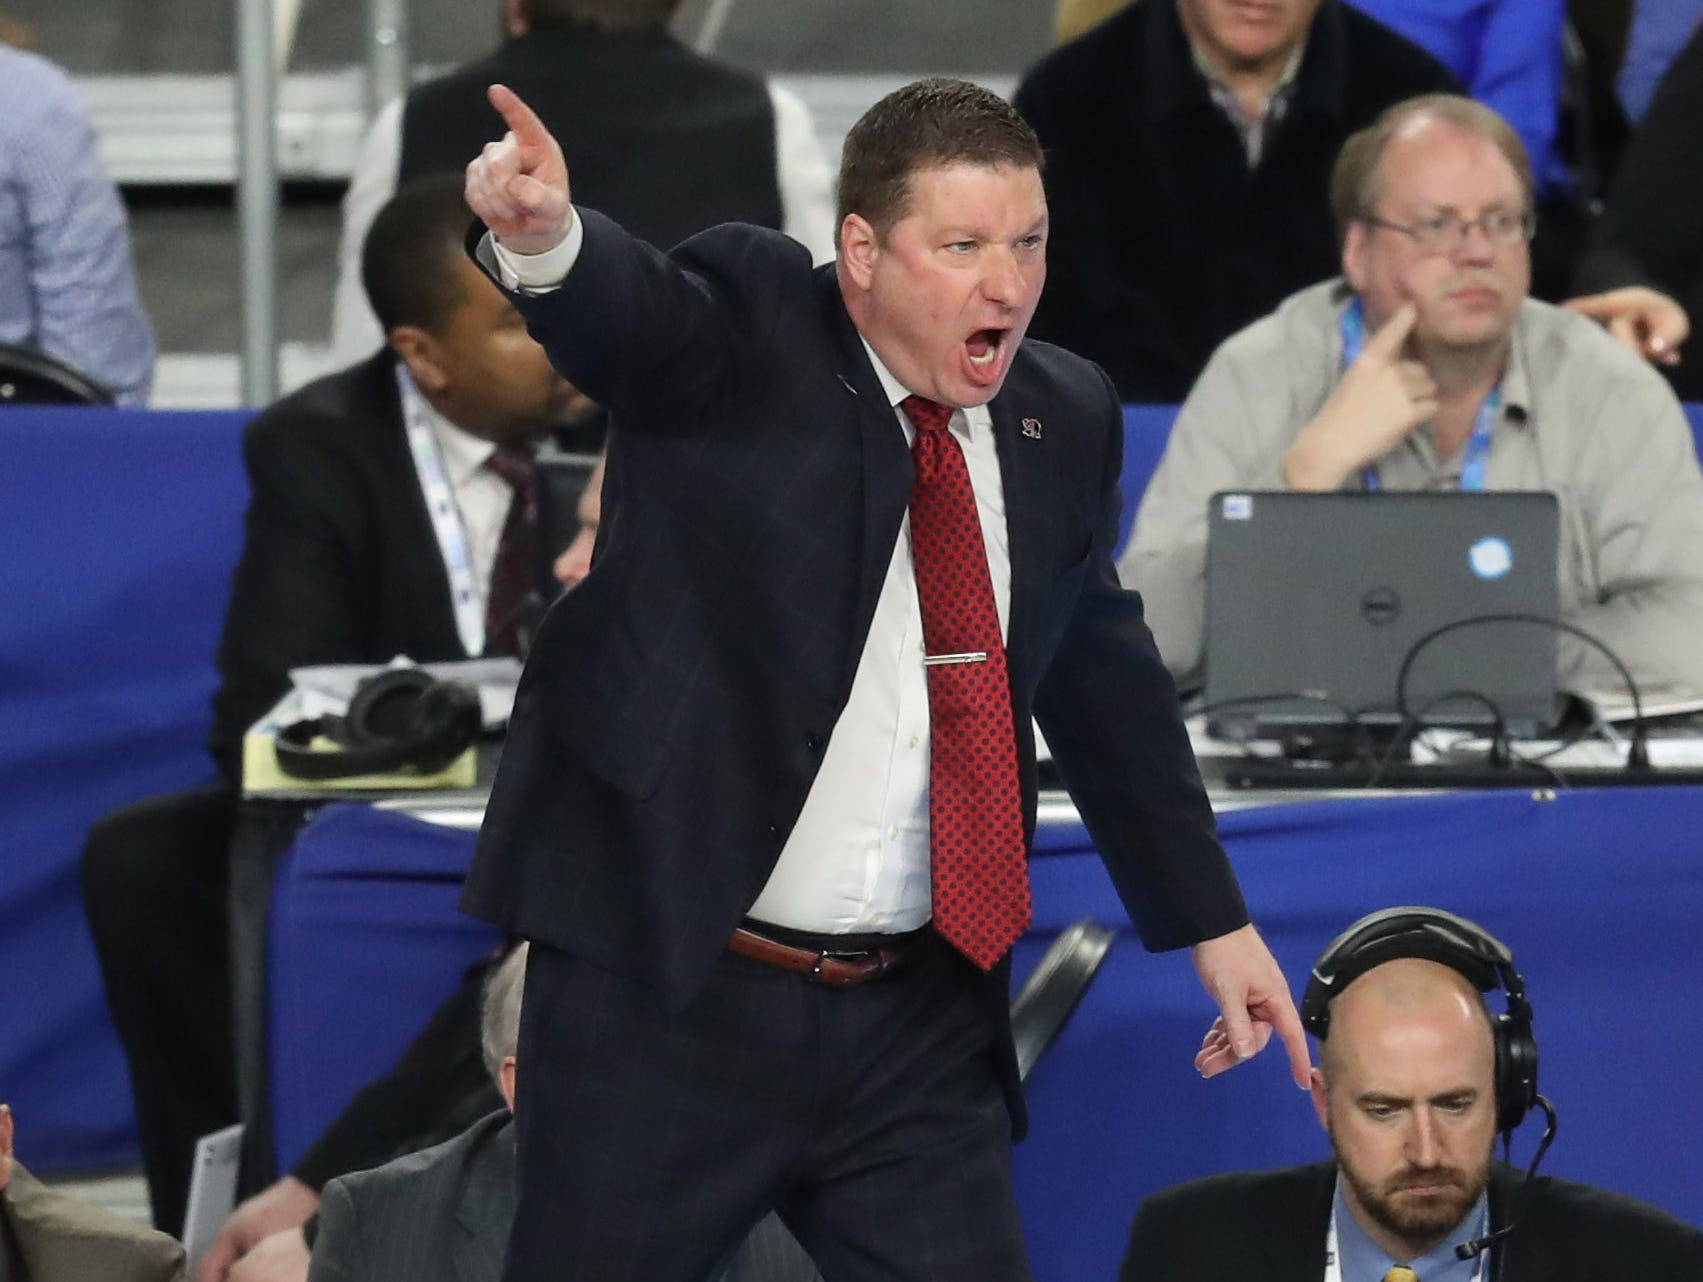 Apr 6, 2019; Minneapolis, MN, USA; Texas Tech Red Raiders head coach Chris Beard reacts during the first half against the Michigan State Spartans in the semifinals of the 2019 men's Final Four at US Bank Stadium. Mandatory Credit: Brace Hemmelgarn-USA TODAY Sports